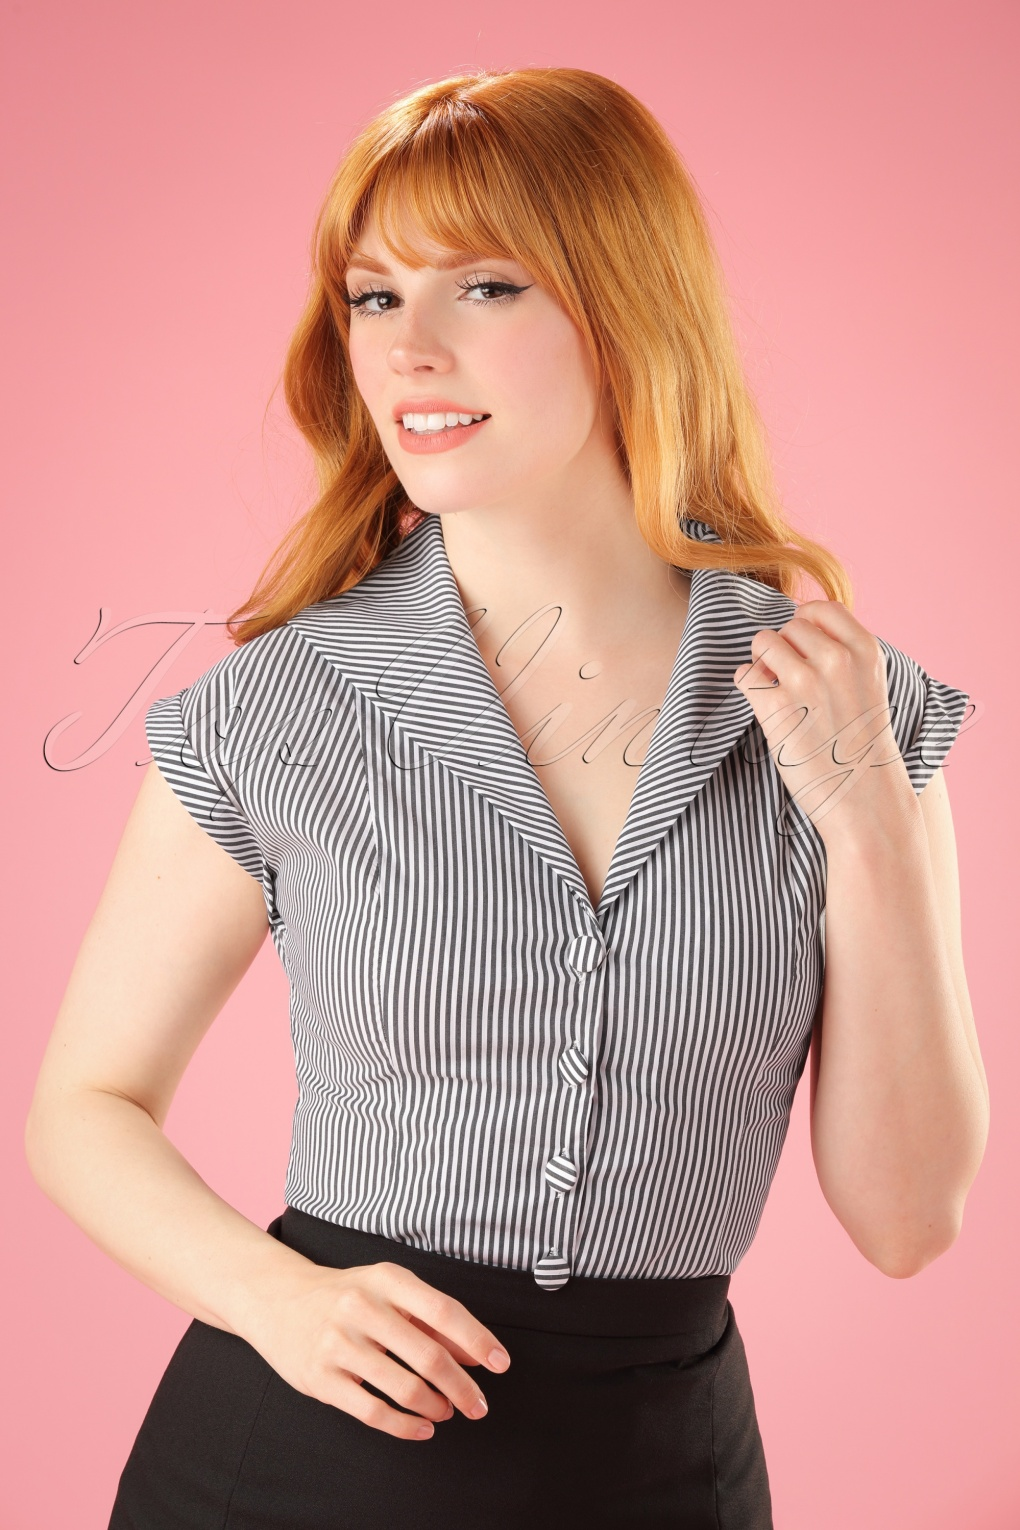 Vintage & Retro Shirts, Halter Tops, Blouses 50s Willow Stripes Blouse in Charcoal and White £26.73 AT vintagedancer.com